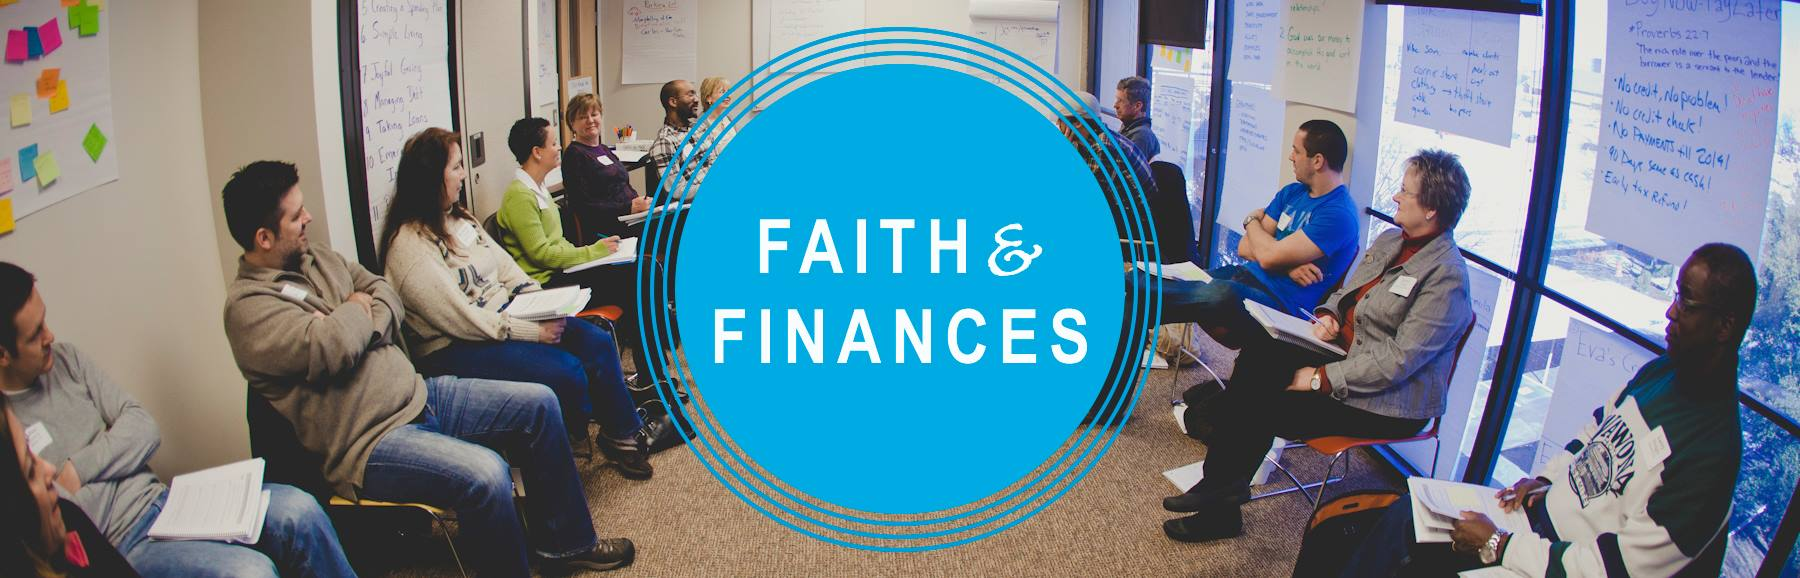 Faith & Finances Registration